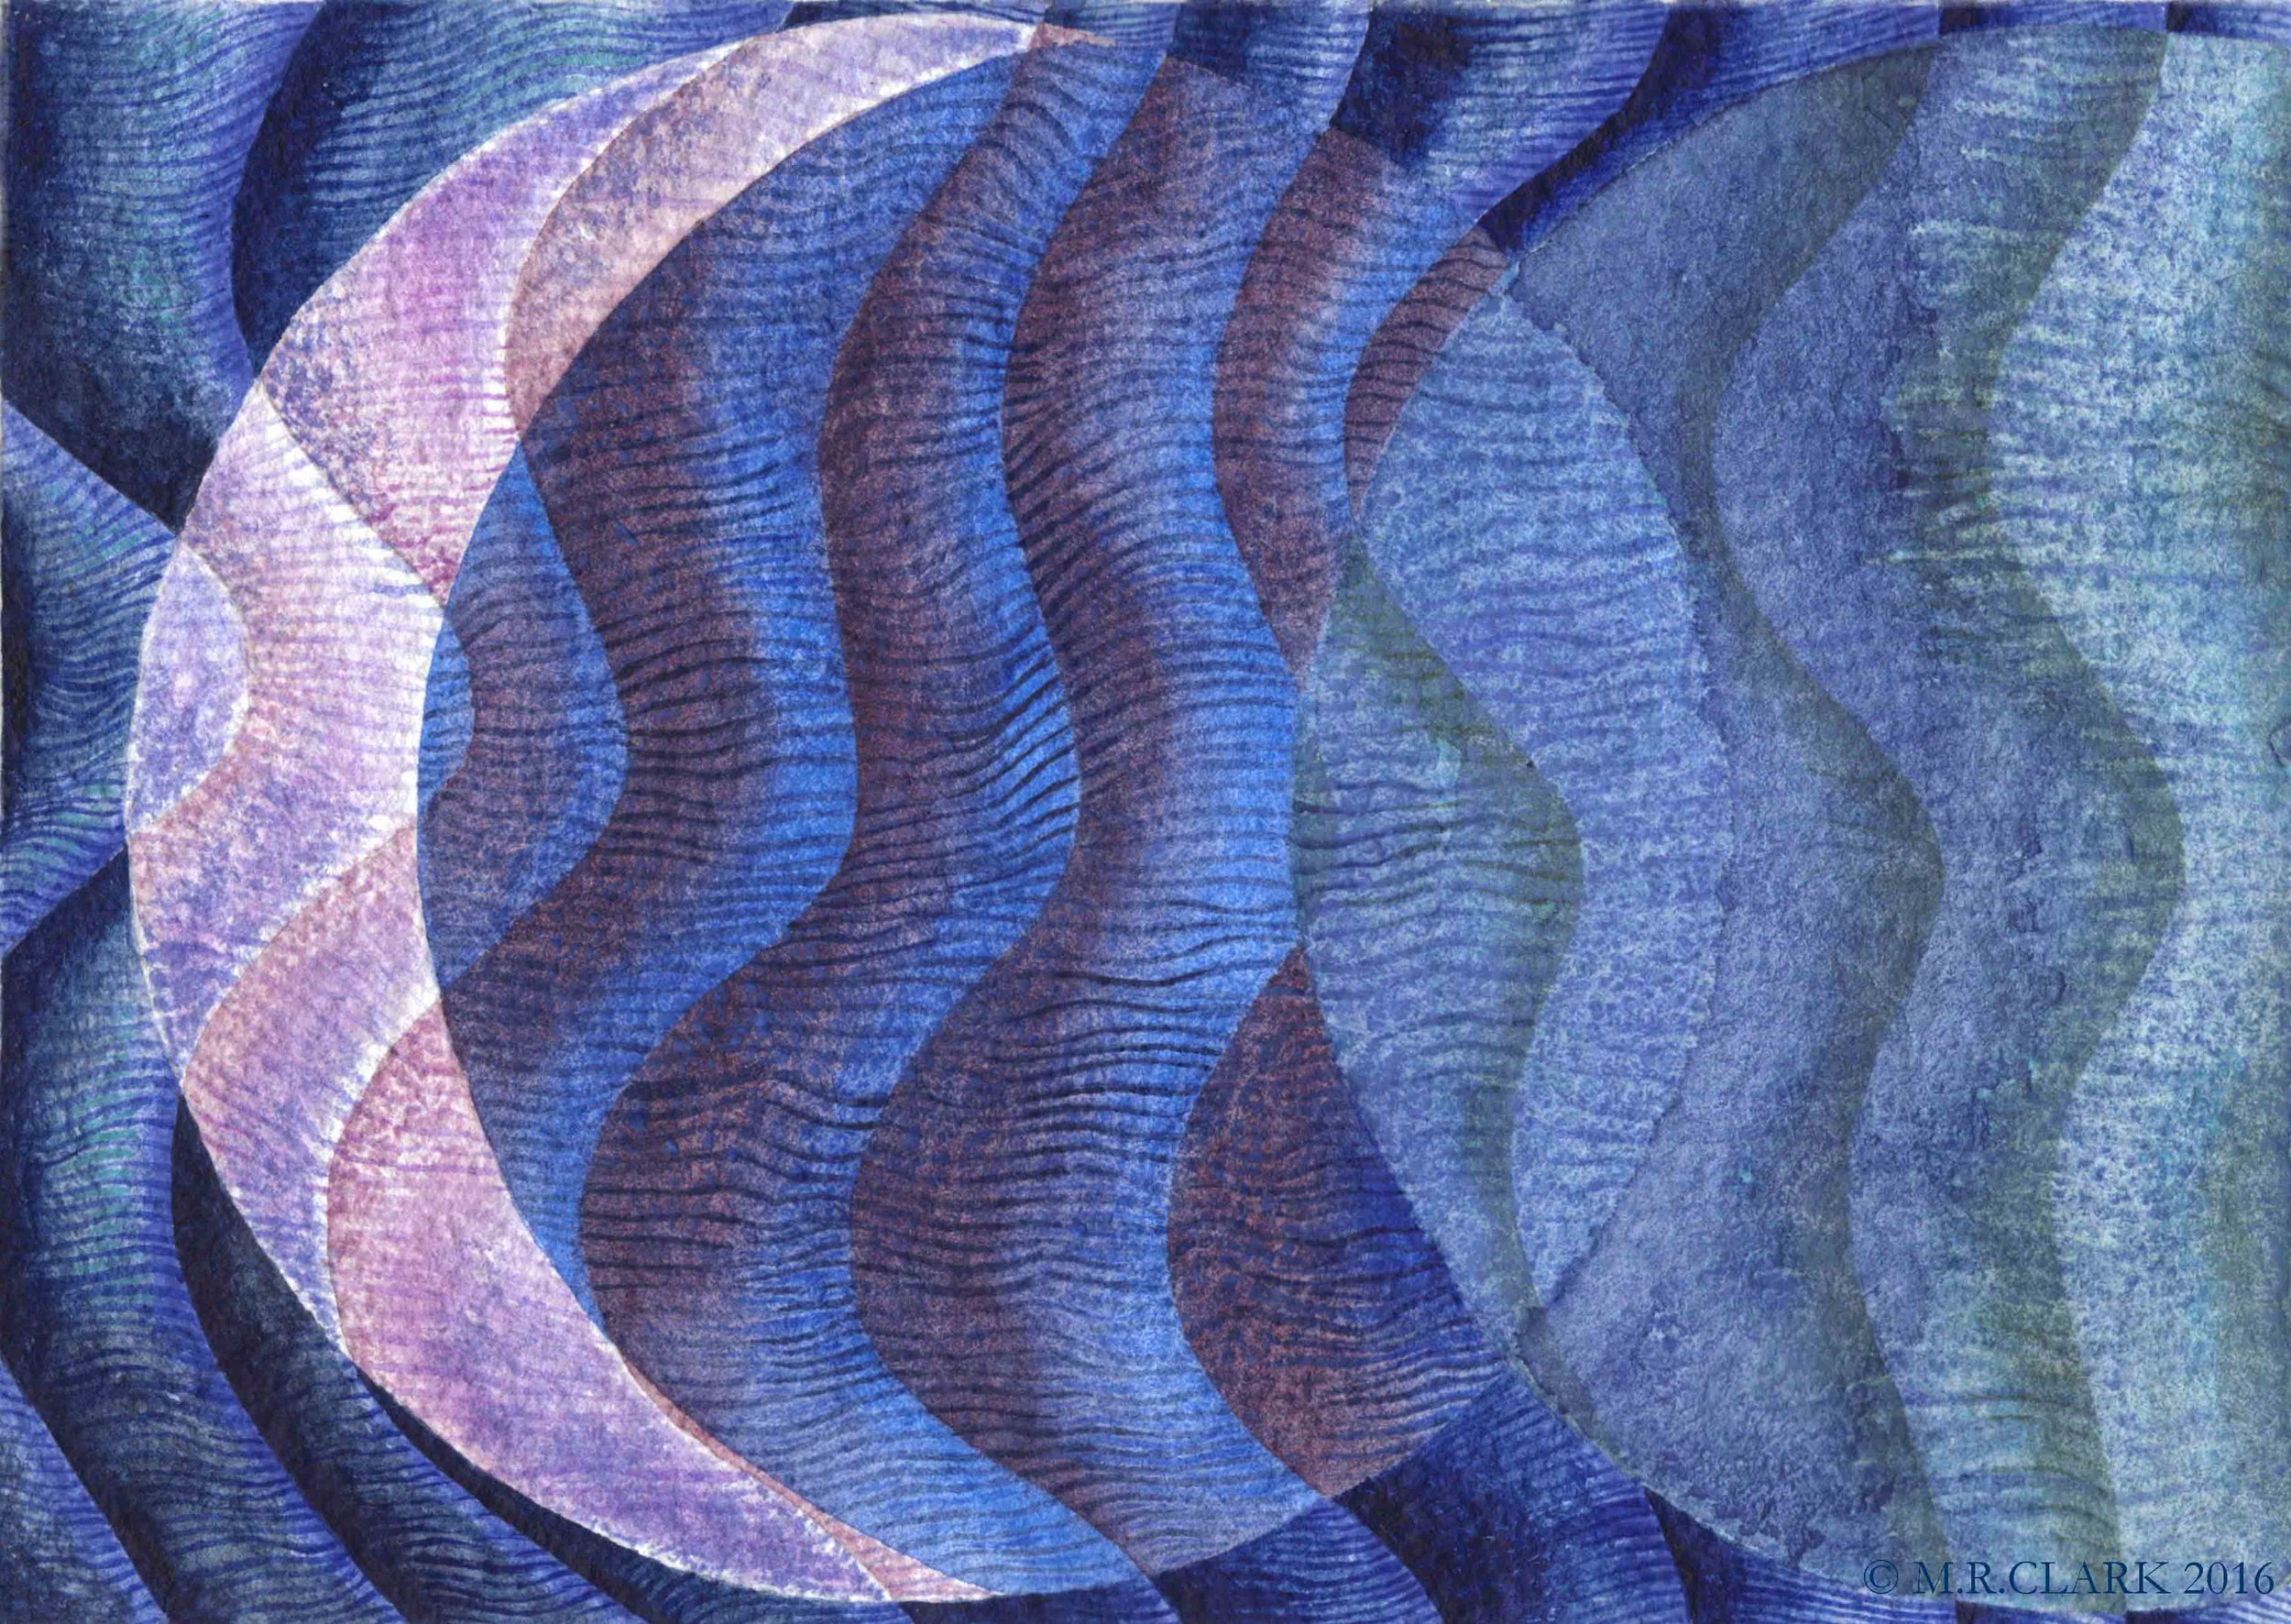 The Moon as a watery reflection. The Moon moving through time as it passes through the phases. The cobalt violet has the cool vibrancy that I was looking to show a moony luminosity.